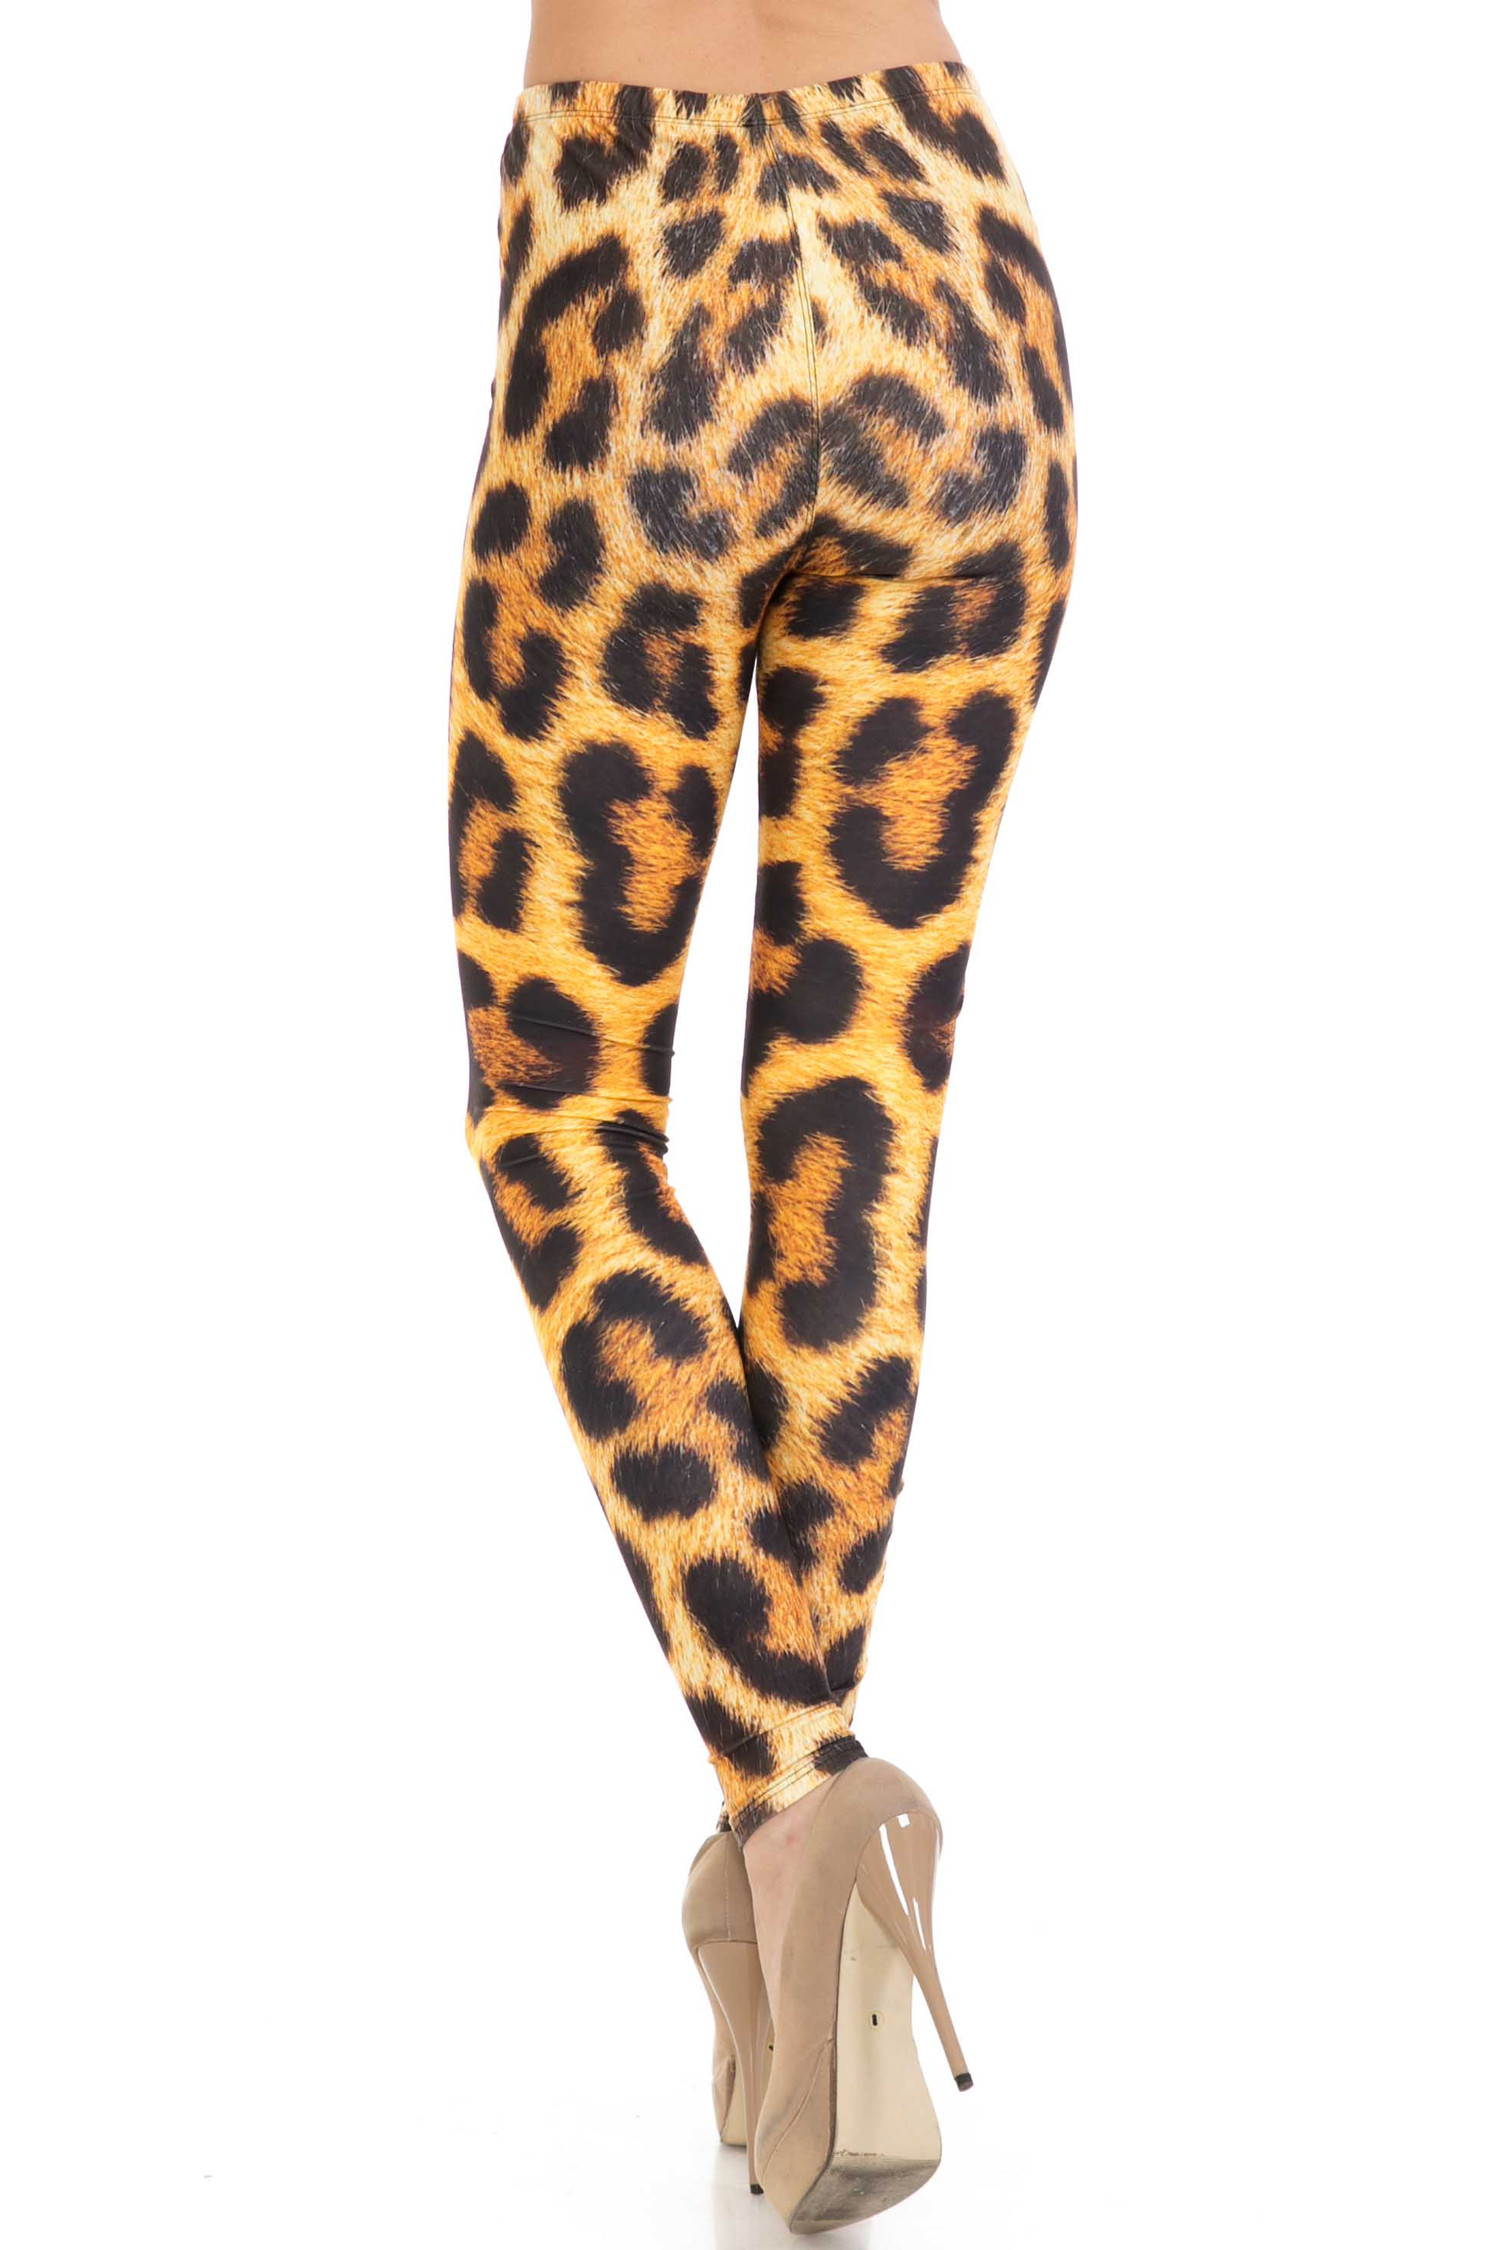 Creamy Soft Spotted Panther Plus Size Leggings - USA Fashion™